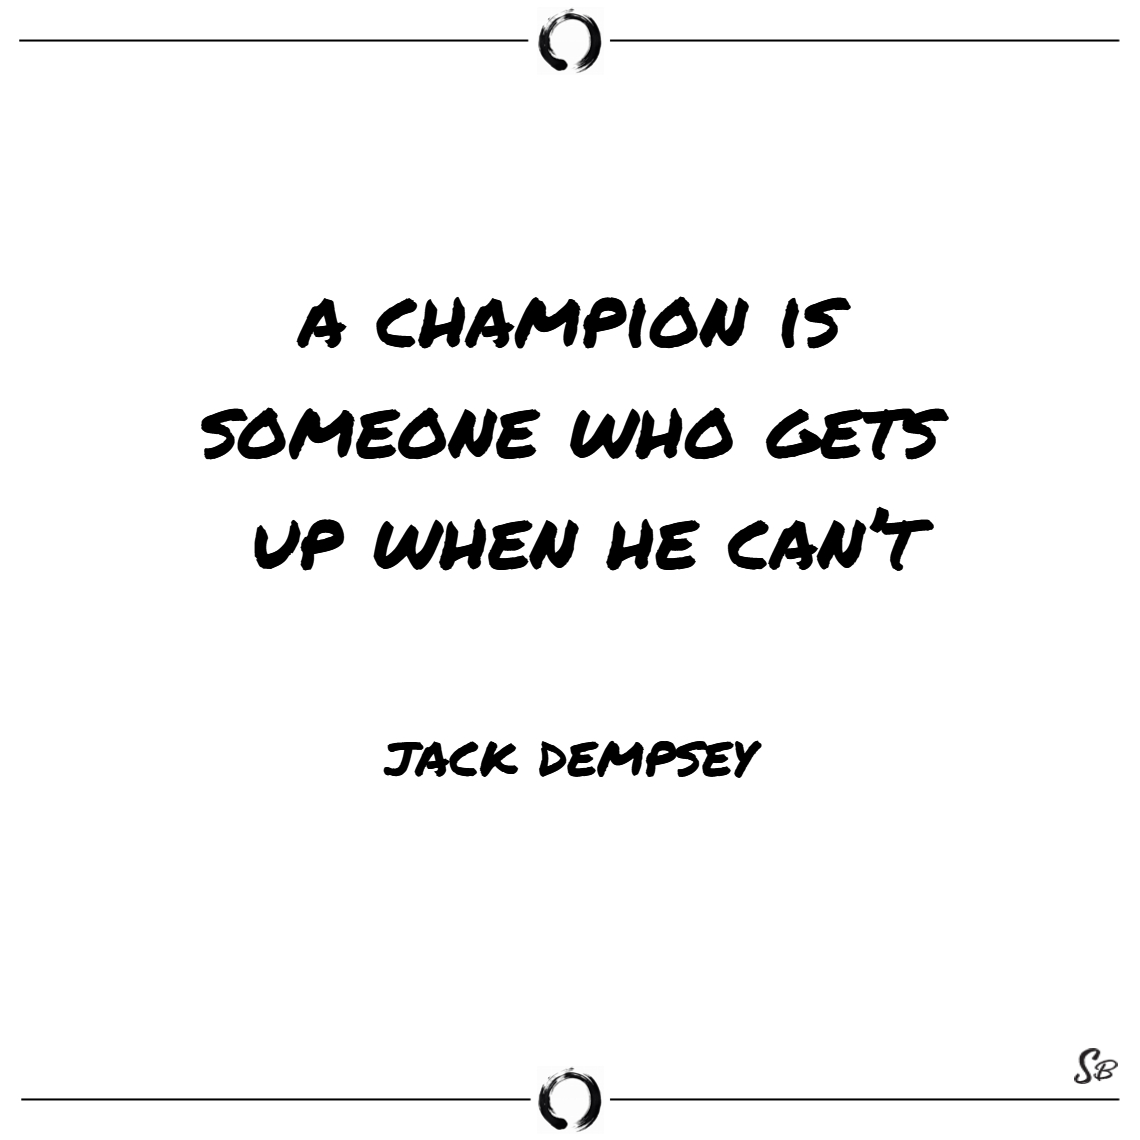 A champion is someone who gets up when he can't. –